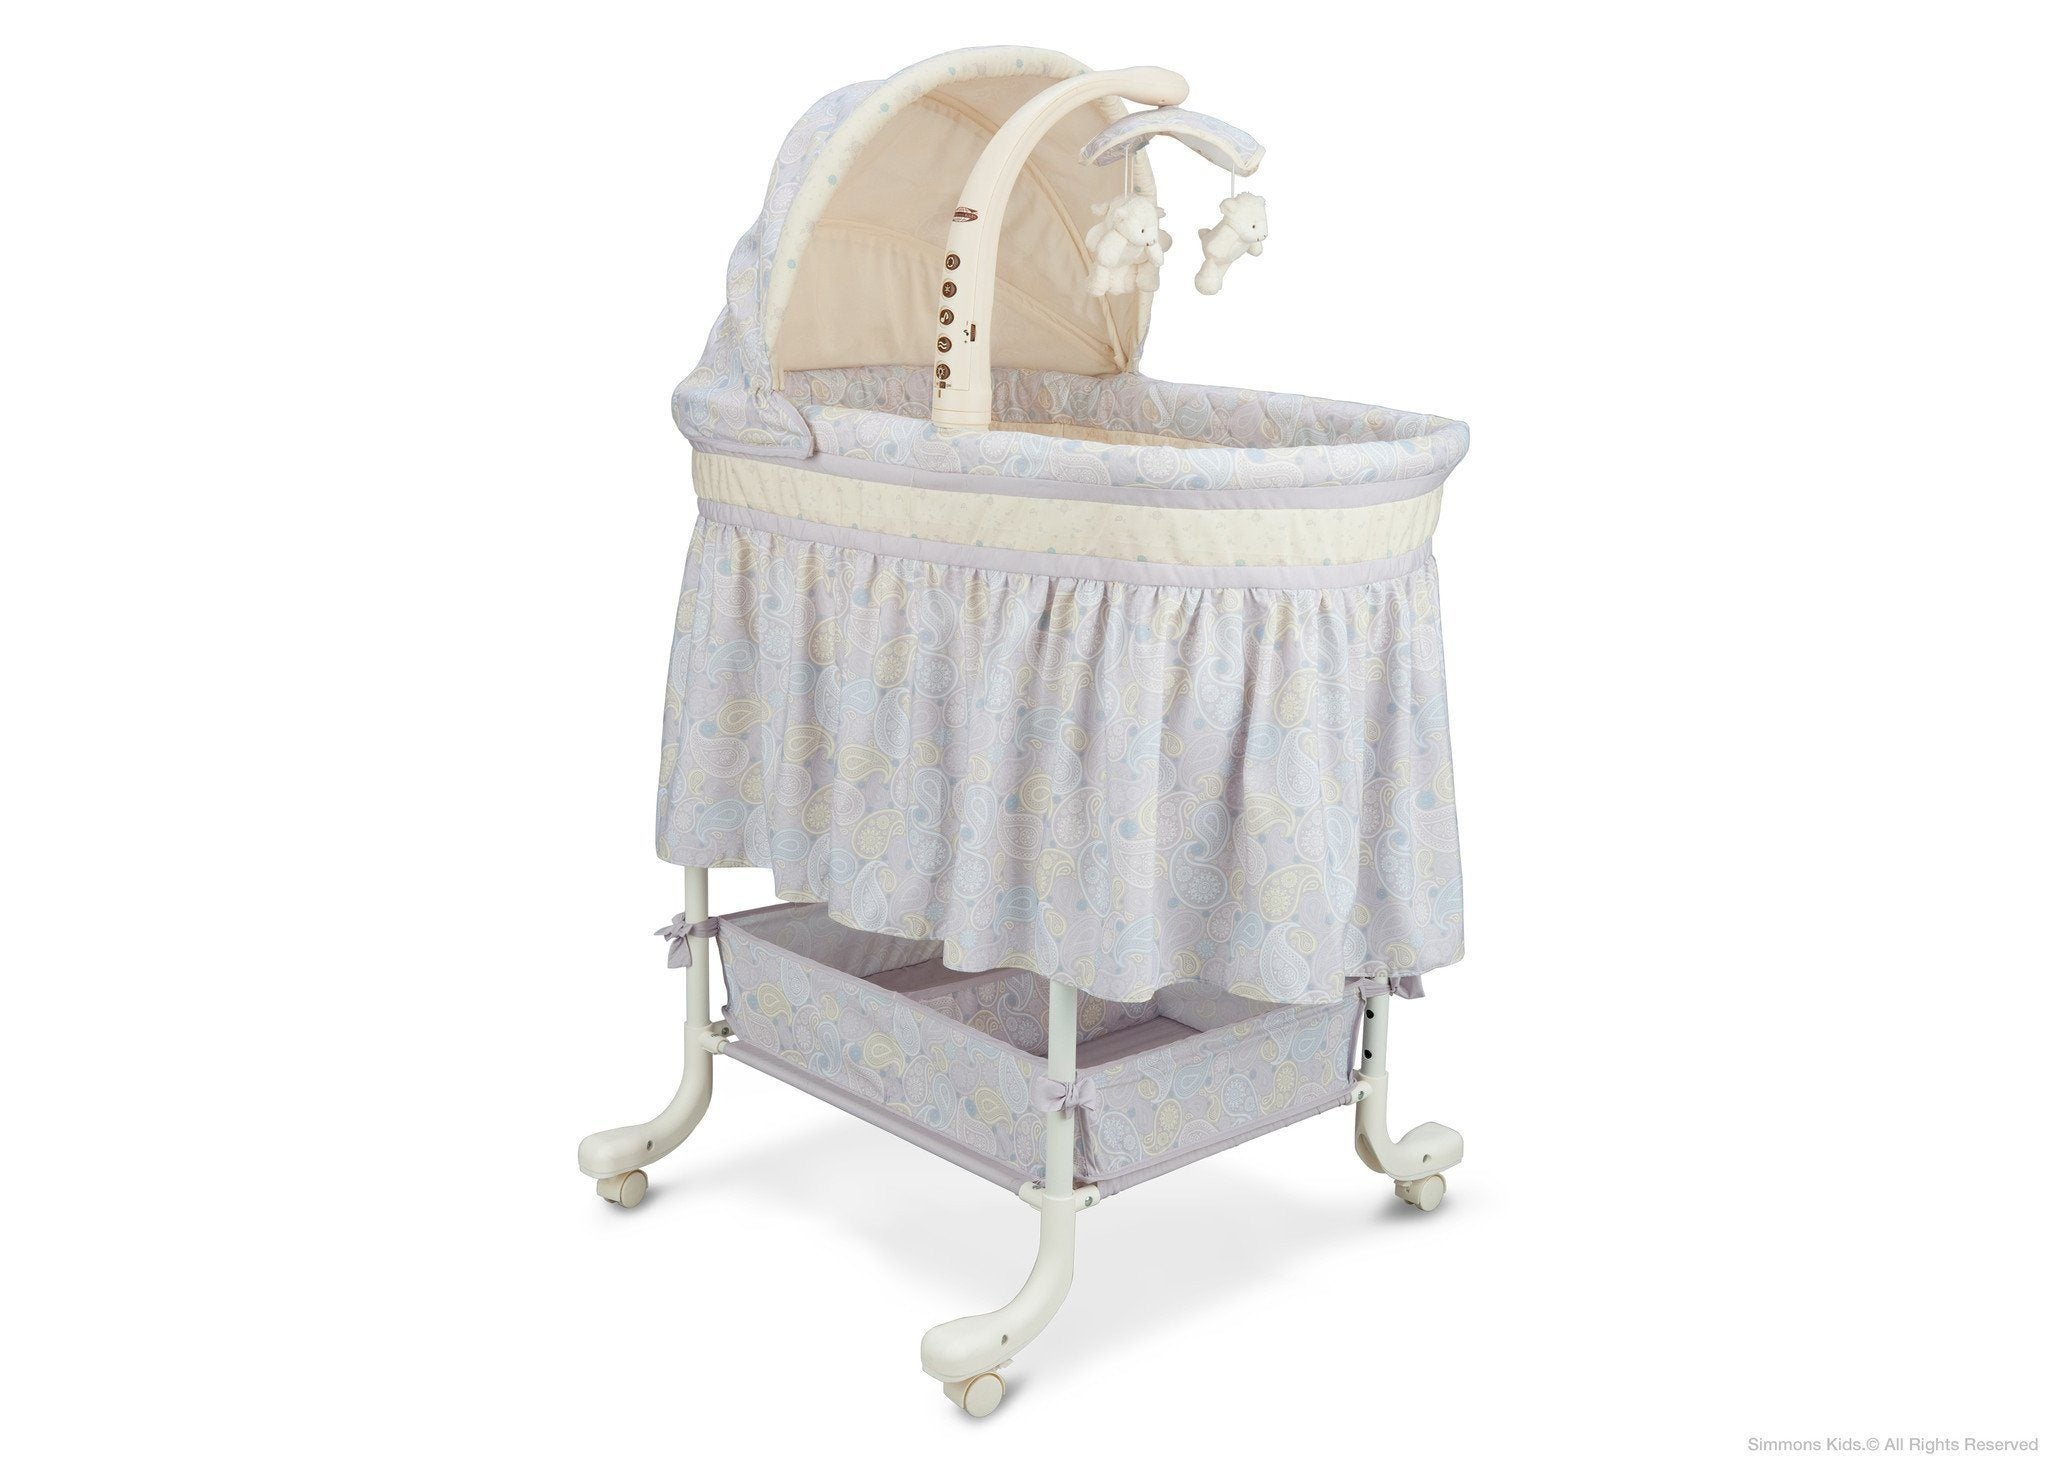 Simmons Kids Paisley Park (050) Deluxe Gliding Bassinet Right View a1a